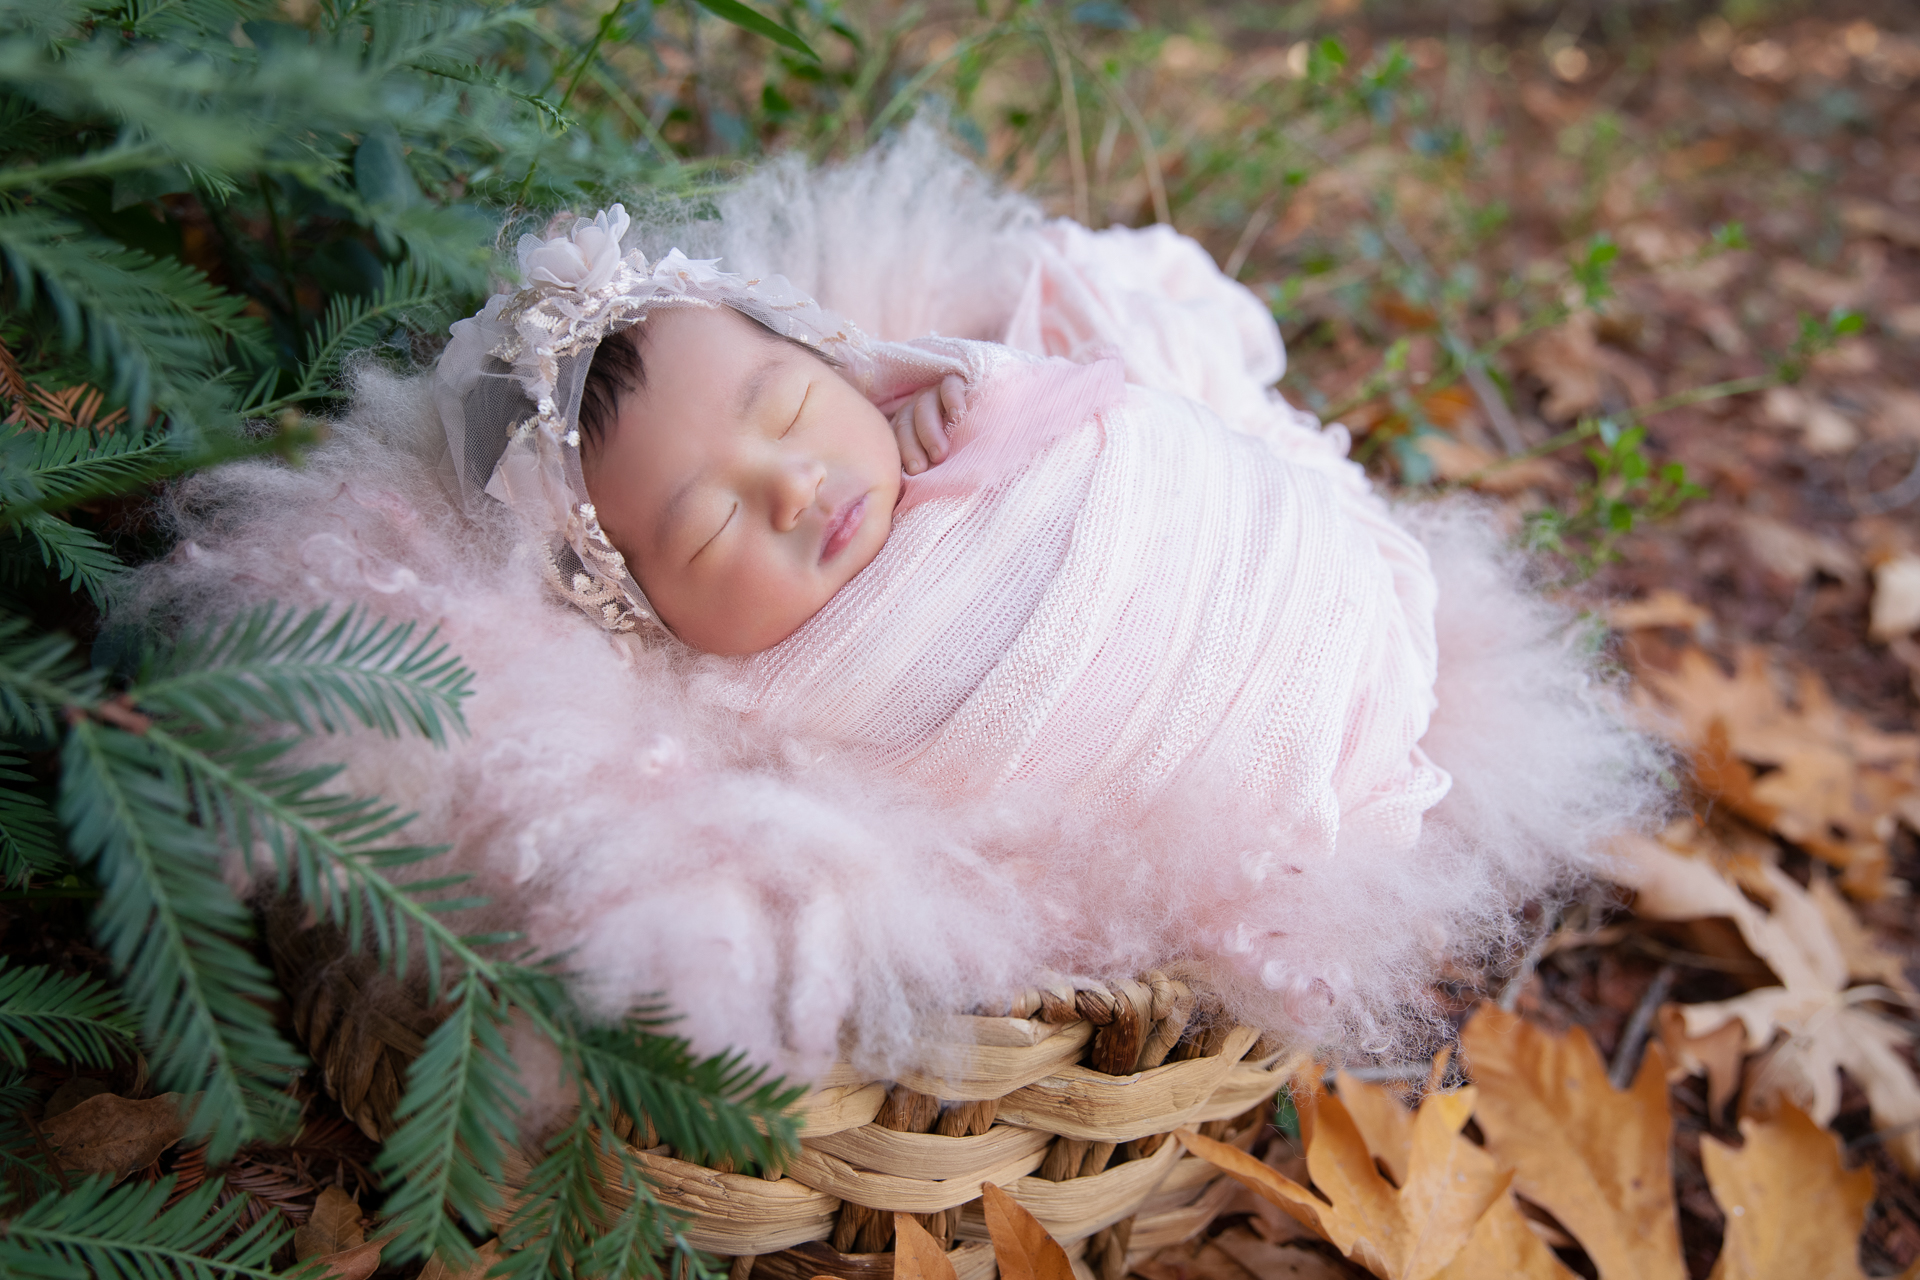 Newborn rests in prop outdoors during fall season while wearing pink hat and pink wrap.